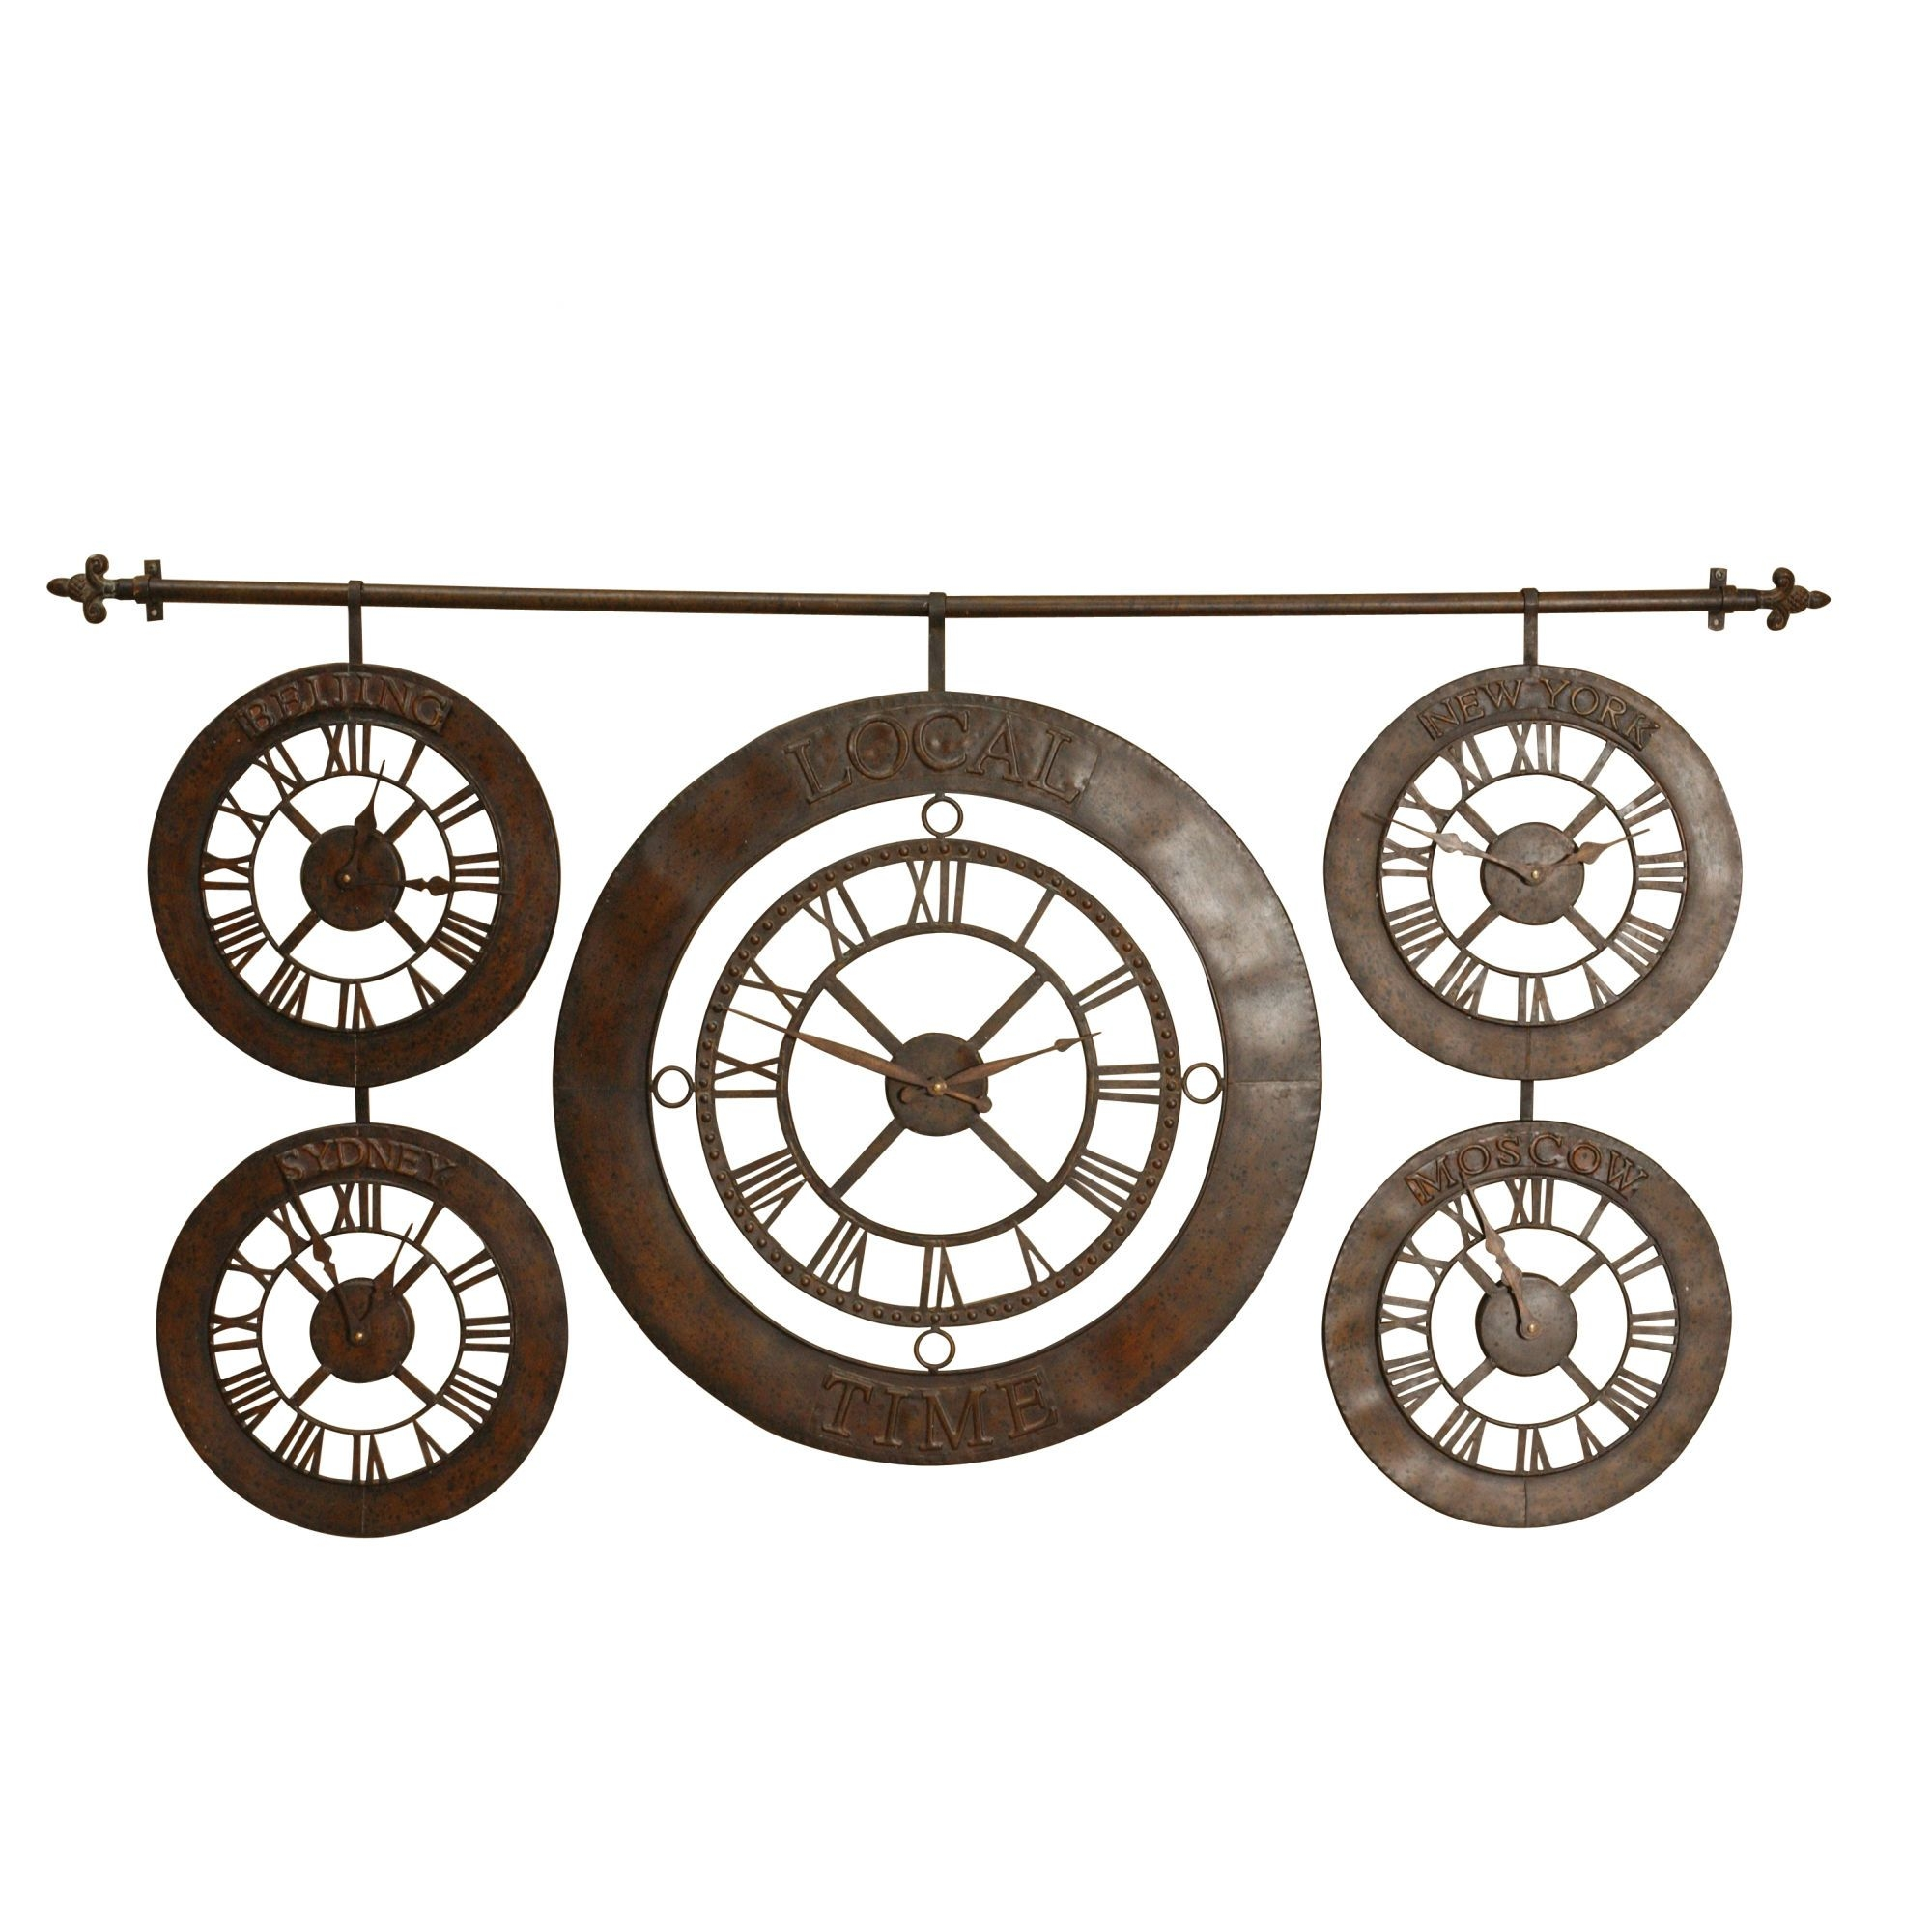 Time Zone Wall Clocks Foter